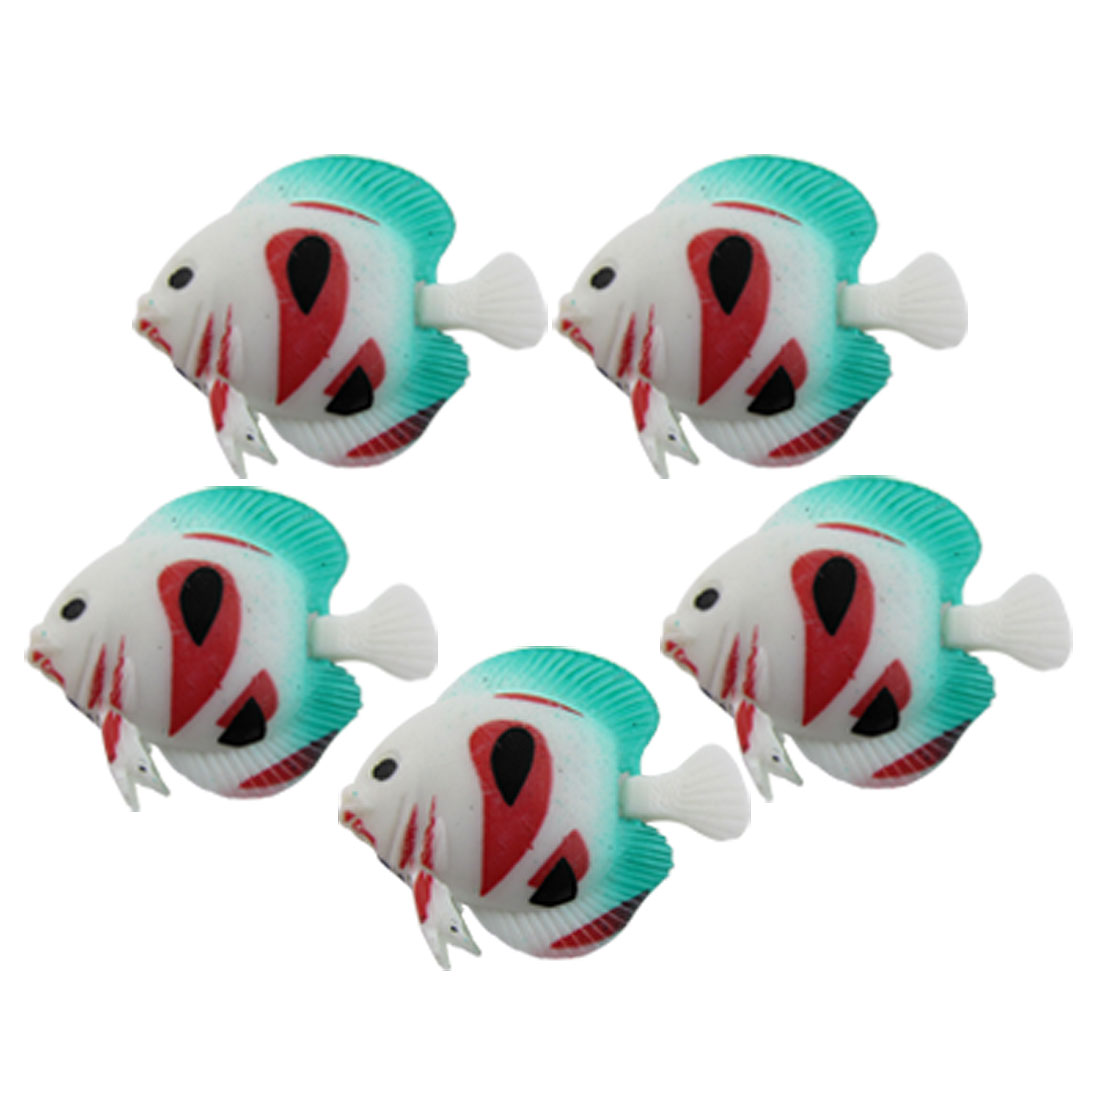 5 PCS Aquarium Tank Plastic Tropical Fish Ornamental Decoration